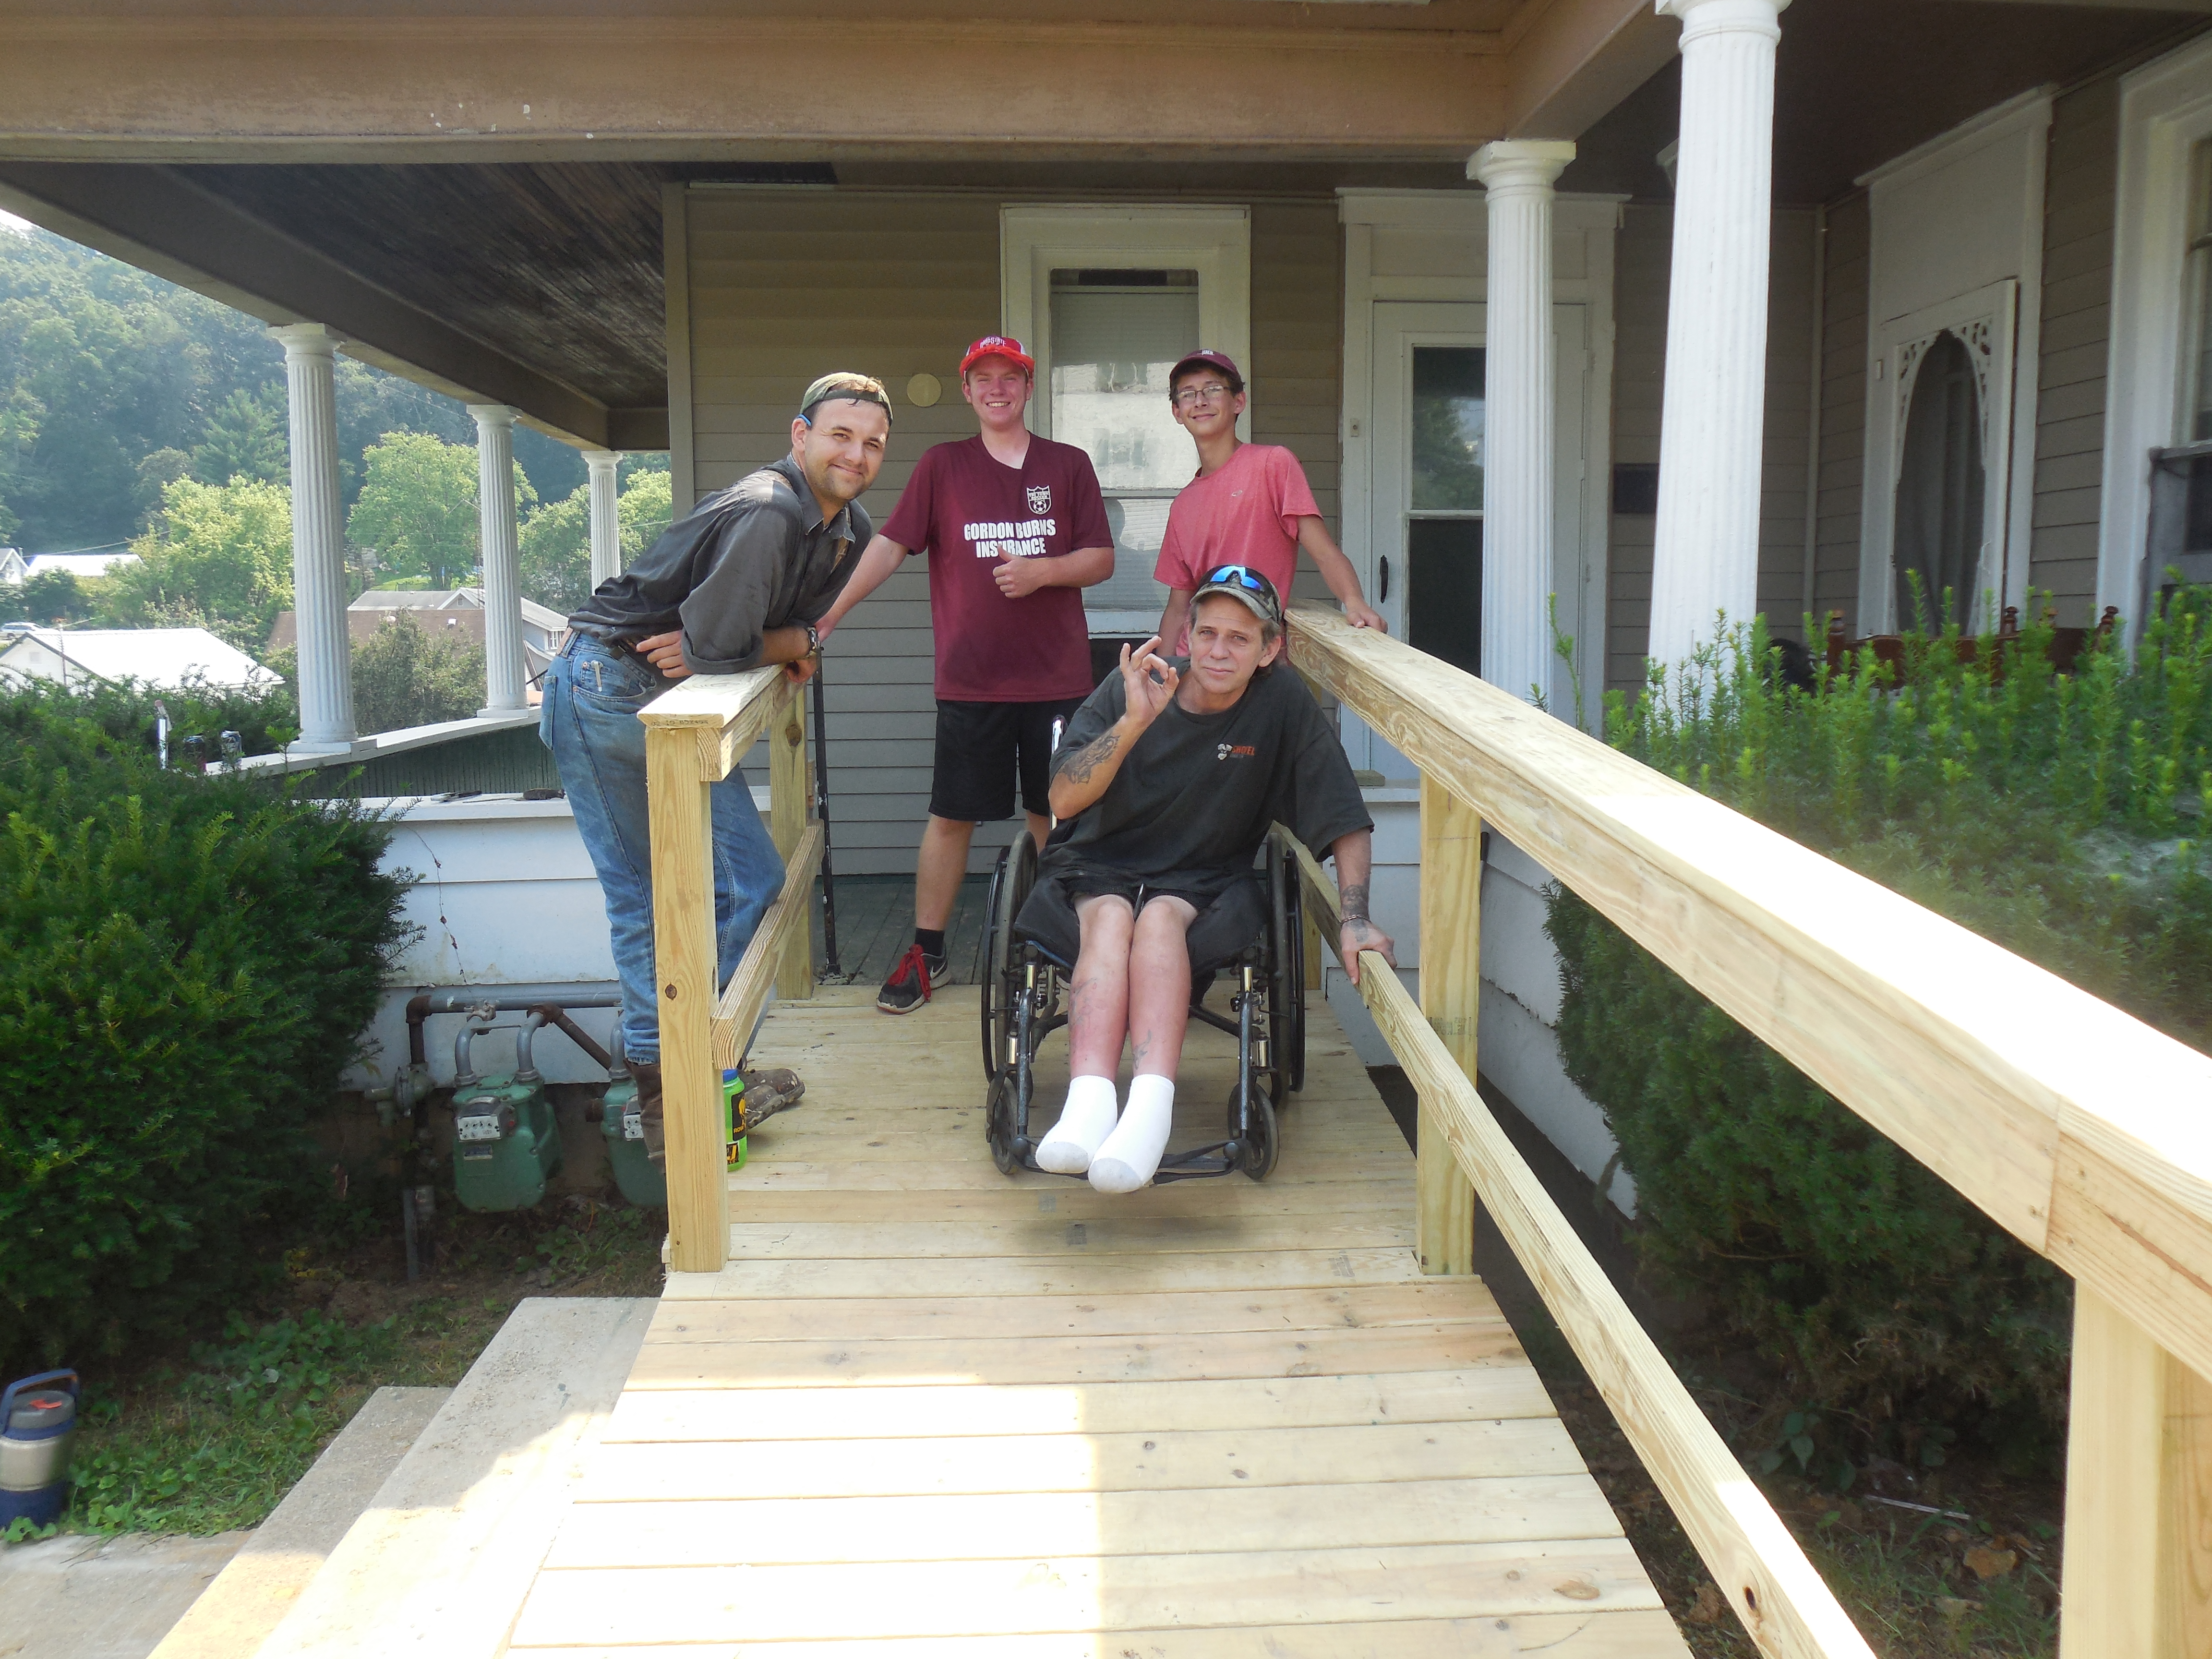 Summer service internship good works inc led by andrew bissell pictured left wesley umc from new hampshire constructed a ramp for a man in glouster fandeluxe Image collections